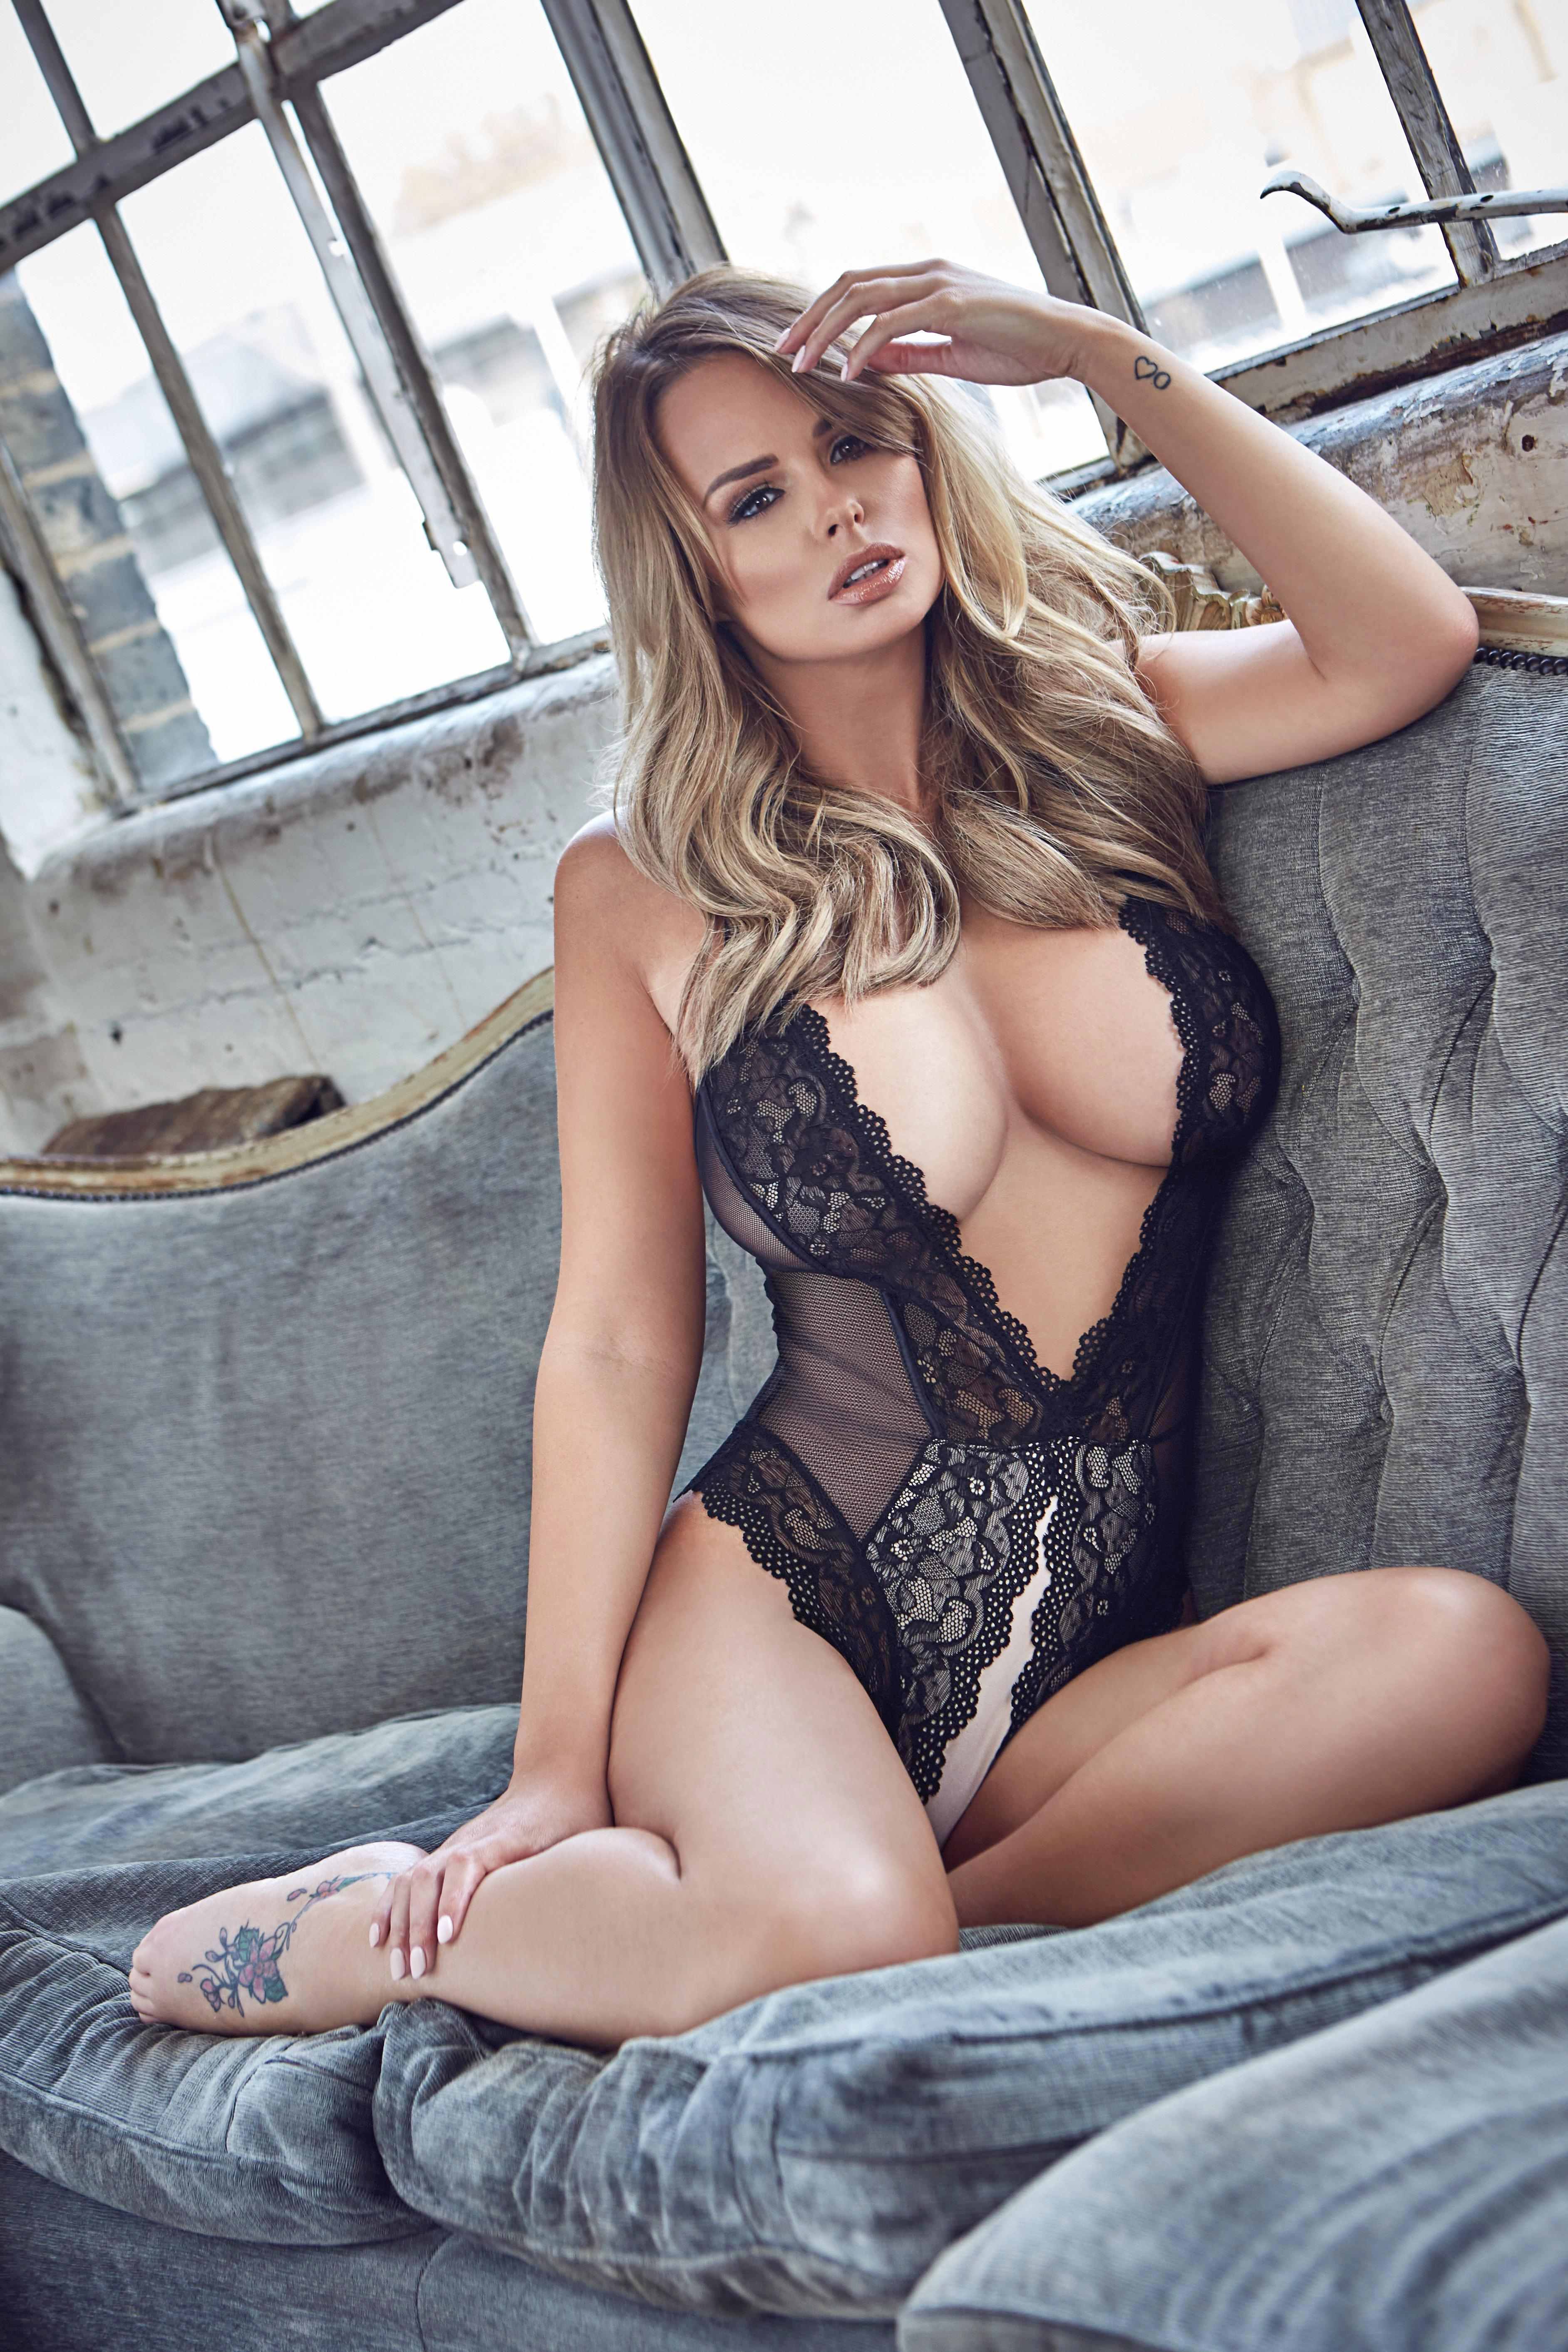 Page 3 Star Rhian Sugden Shows Off Her Lace Body Suit In Her With Regard To Sun Page 3 Calenders